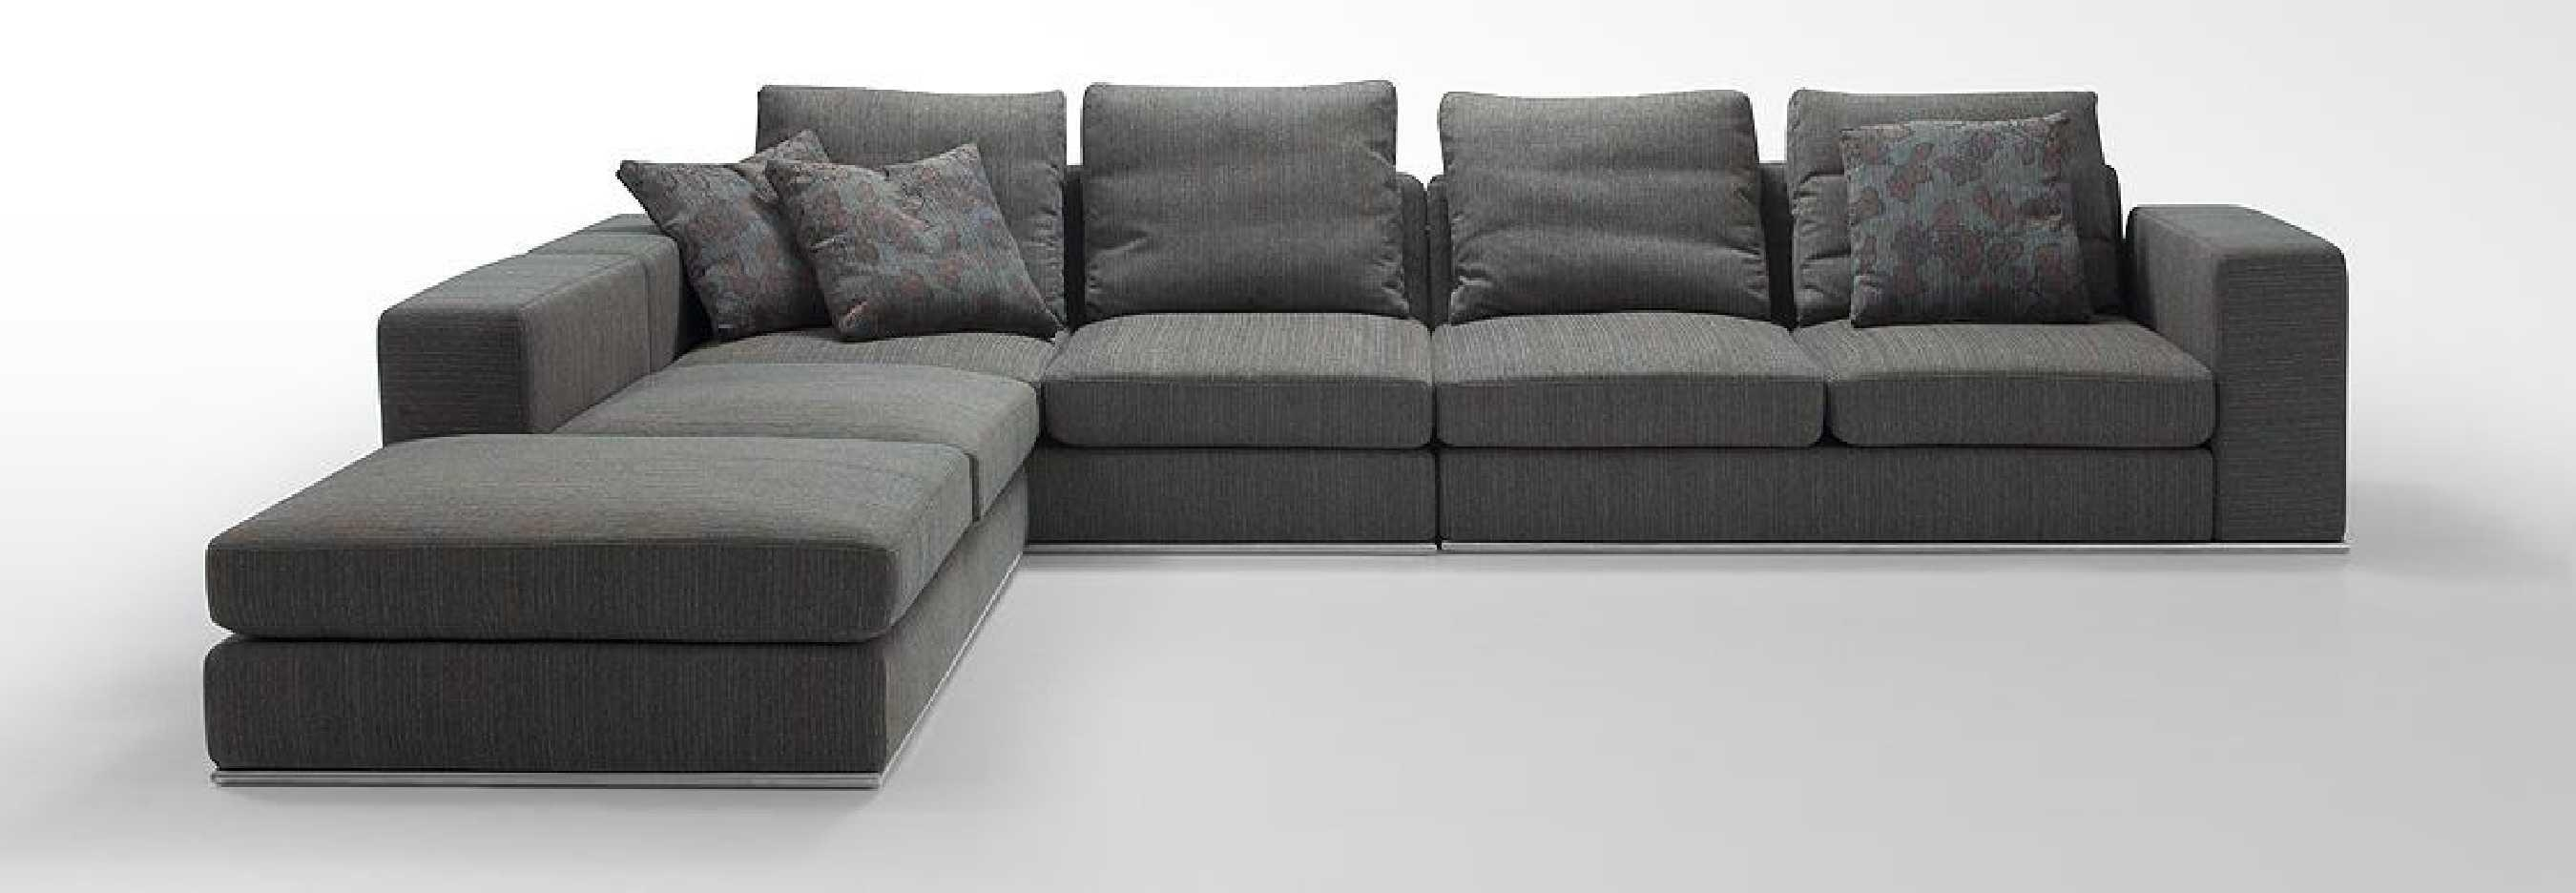 Sofas Center : Astounding Greyectionalofas Photos Design Gray Inside Sofas With Chrome Legs (Image 16 of 20)